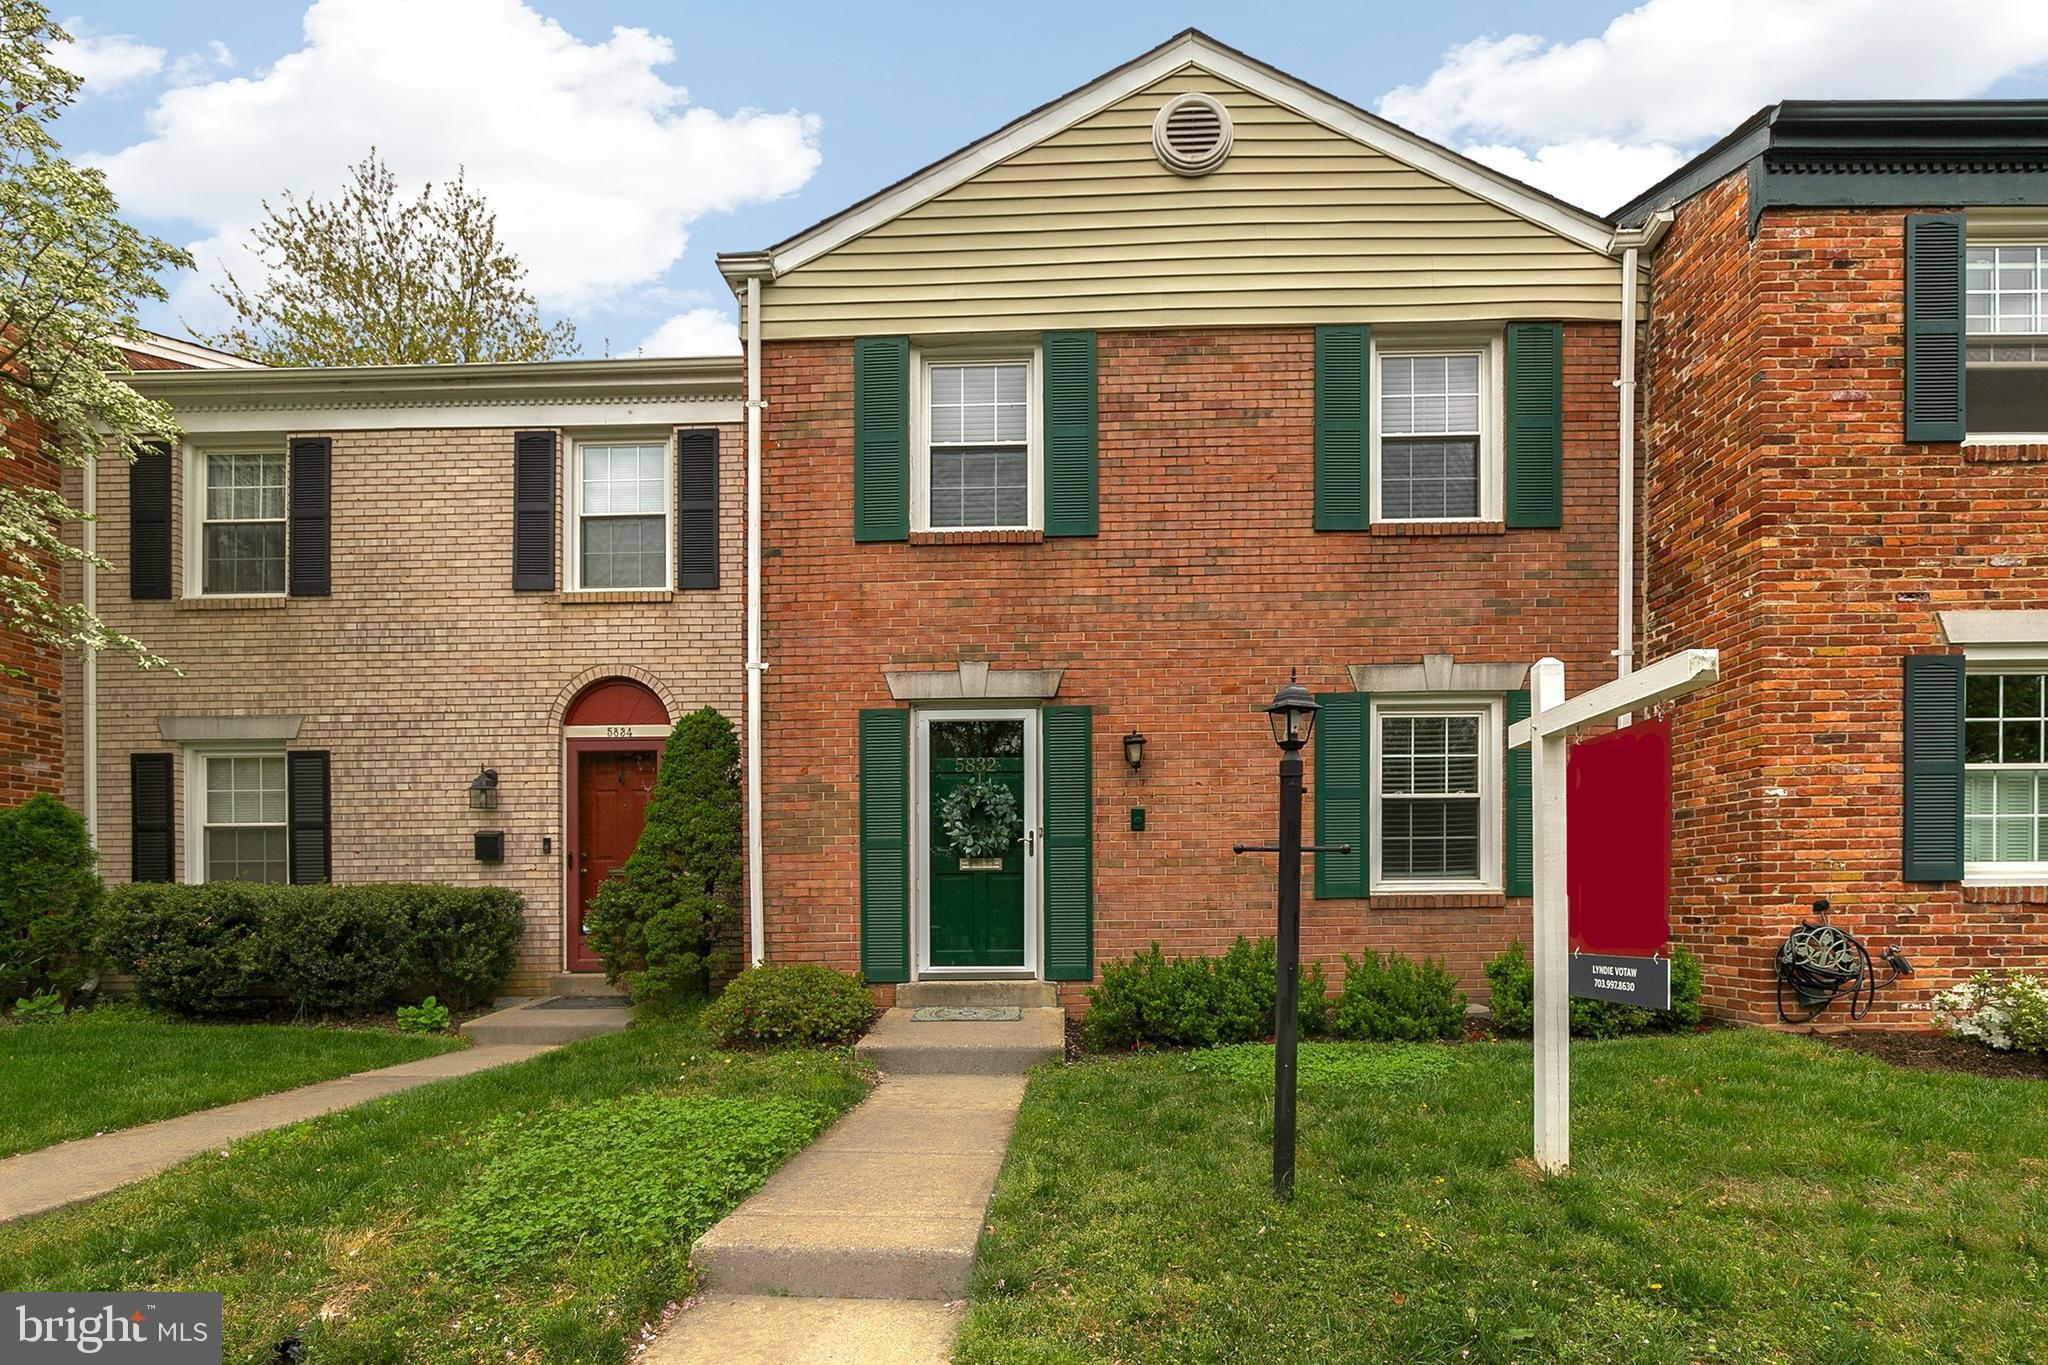 Spacious, Luxurious, Modern Townhouse! Walk to Metro! This luxurious Berkshire townhouse, tucked away in a private, park-like setting, is exactly what you have been waiting for! Spacious, airy, and bright, natural light bathes every room in this stunning move-in ready home.  Three large bedrooms upstairs, plus a large walk-out lower level means plenty of space for your family, visiting guests, home office, home gym, etc.  Gorgeous finishes everywhere you look--- granite, designer tile, upscale lighting, etc. Beautiful functional kitchen. Two full baths, two half baths.  Ample storage and closet space. Private, fenced walk-out patio: the perfect outdoor space. Move-in ready! No To-Do List for you: All major systems updated, including HVAC (2014), Water Heater (2013), All Appliances (2013-2016), Electrical Panel (2016), etc! Walk to Metro! Close to shopping, Old Town, parks, theatres, grocery stores, everywhere you want to be! Easy commute to DC, Pentagon, Mark Center, etc! Welcome home! OFFERS WILL BE REVIEWED MONDAY EVENING, APRIL 29, 2019!